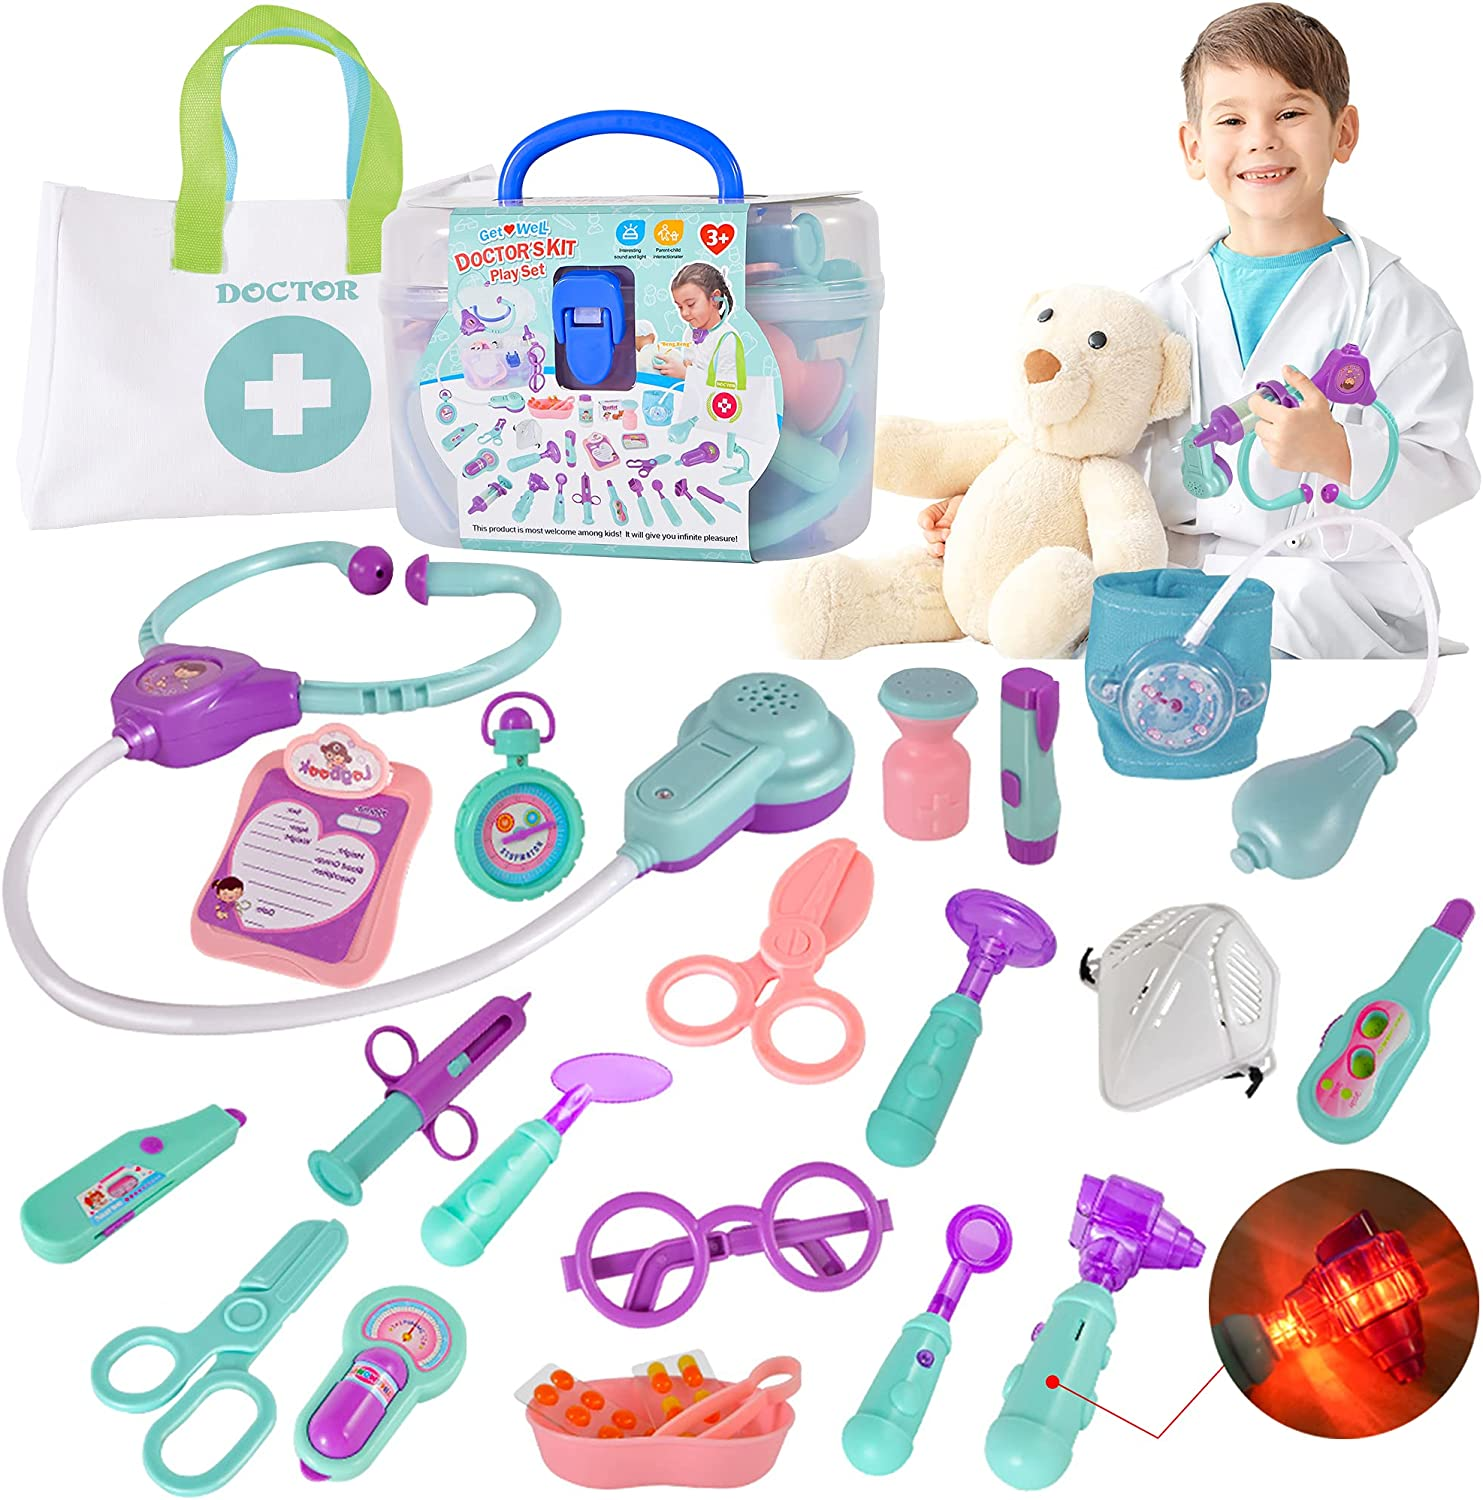 FLYINGSEEDS Doctor Kit for Kids, 24 Pcs Pretend Play Dotor Dentist Toys with Electronic Equipment, Packed in Medical Case Best Gifts for 3 4 5 6 7 Ages Boys Girls